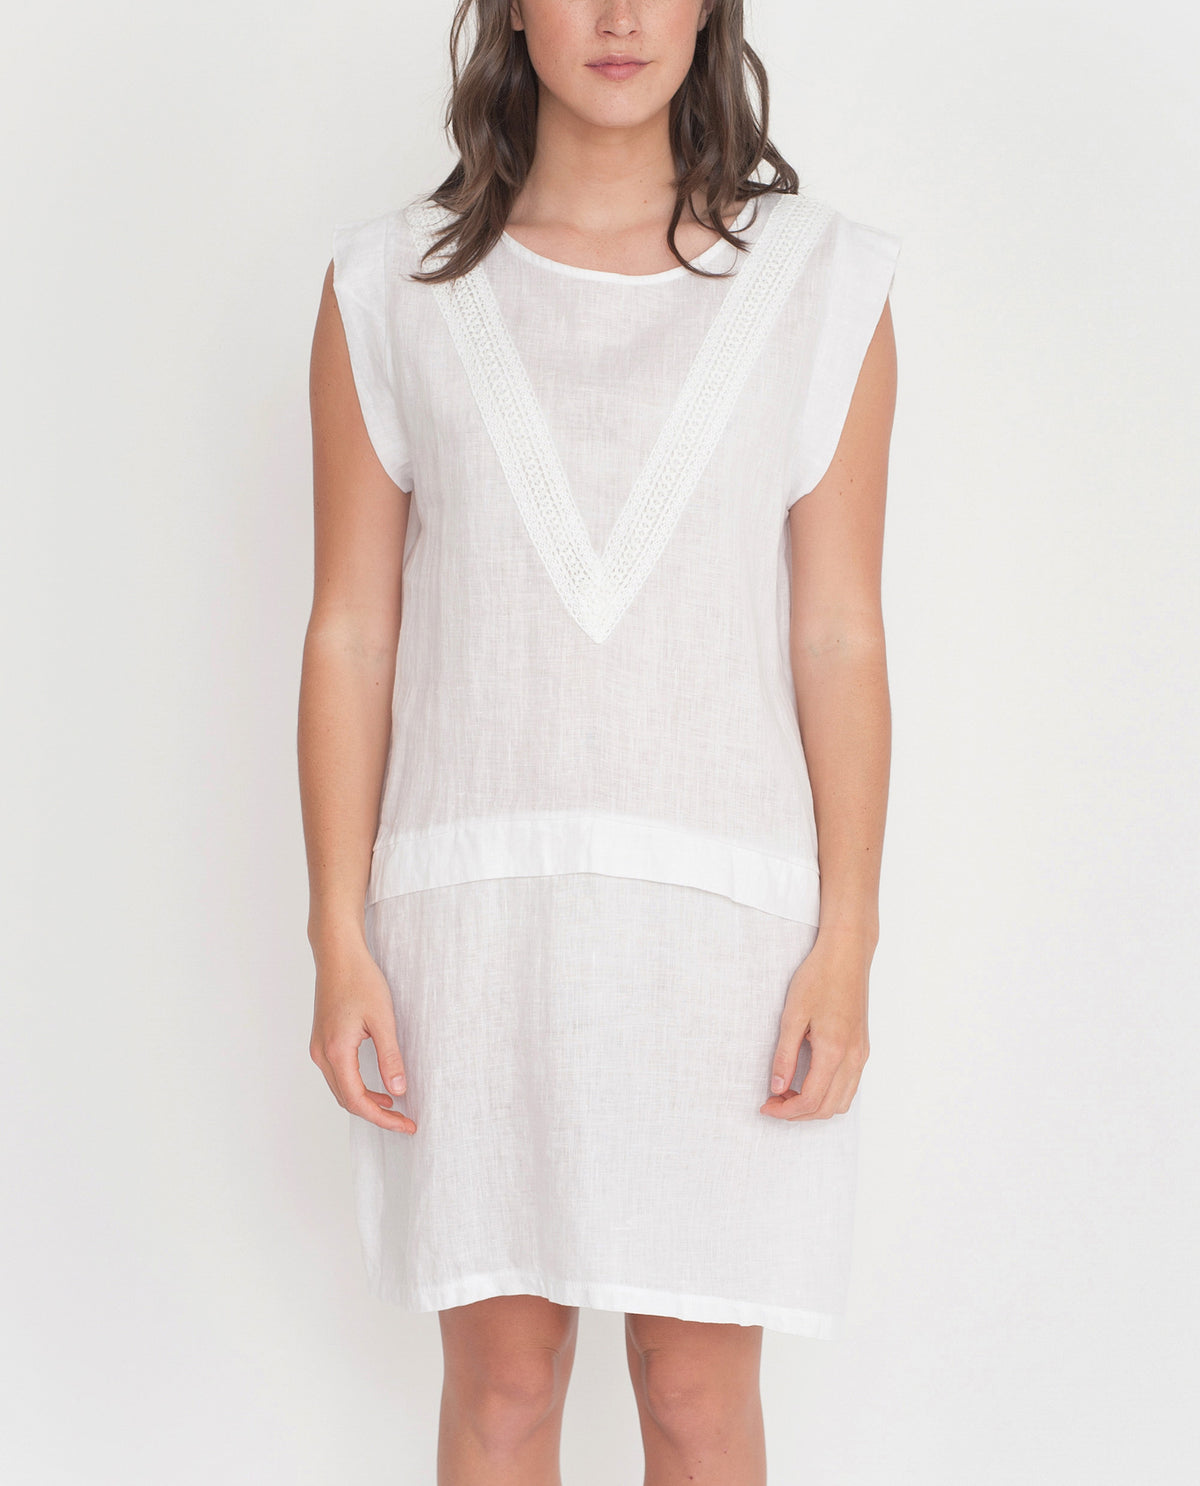 HADLEY Organic Cotton And Linen Dress In White